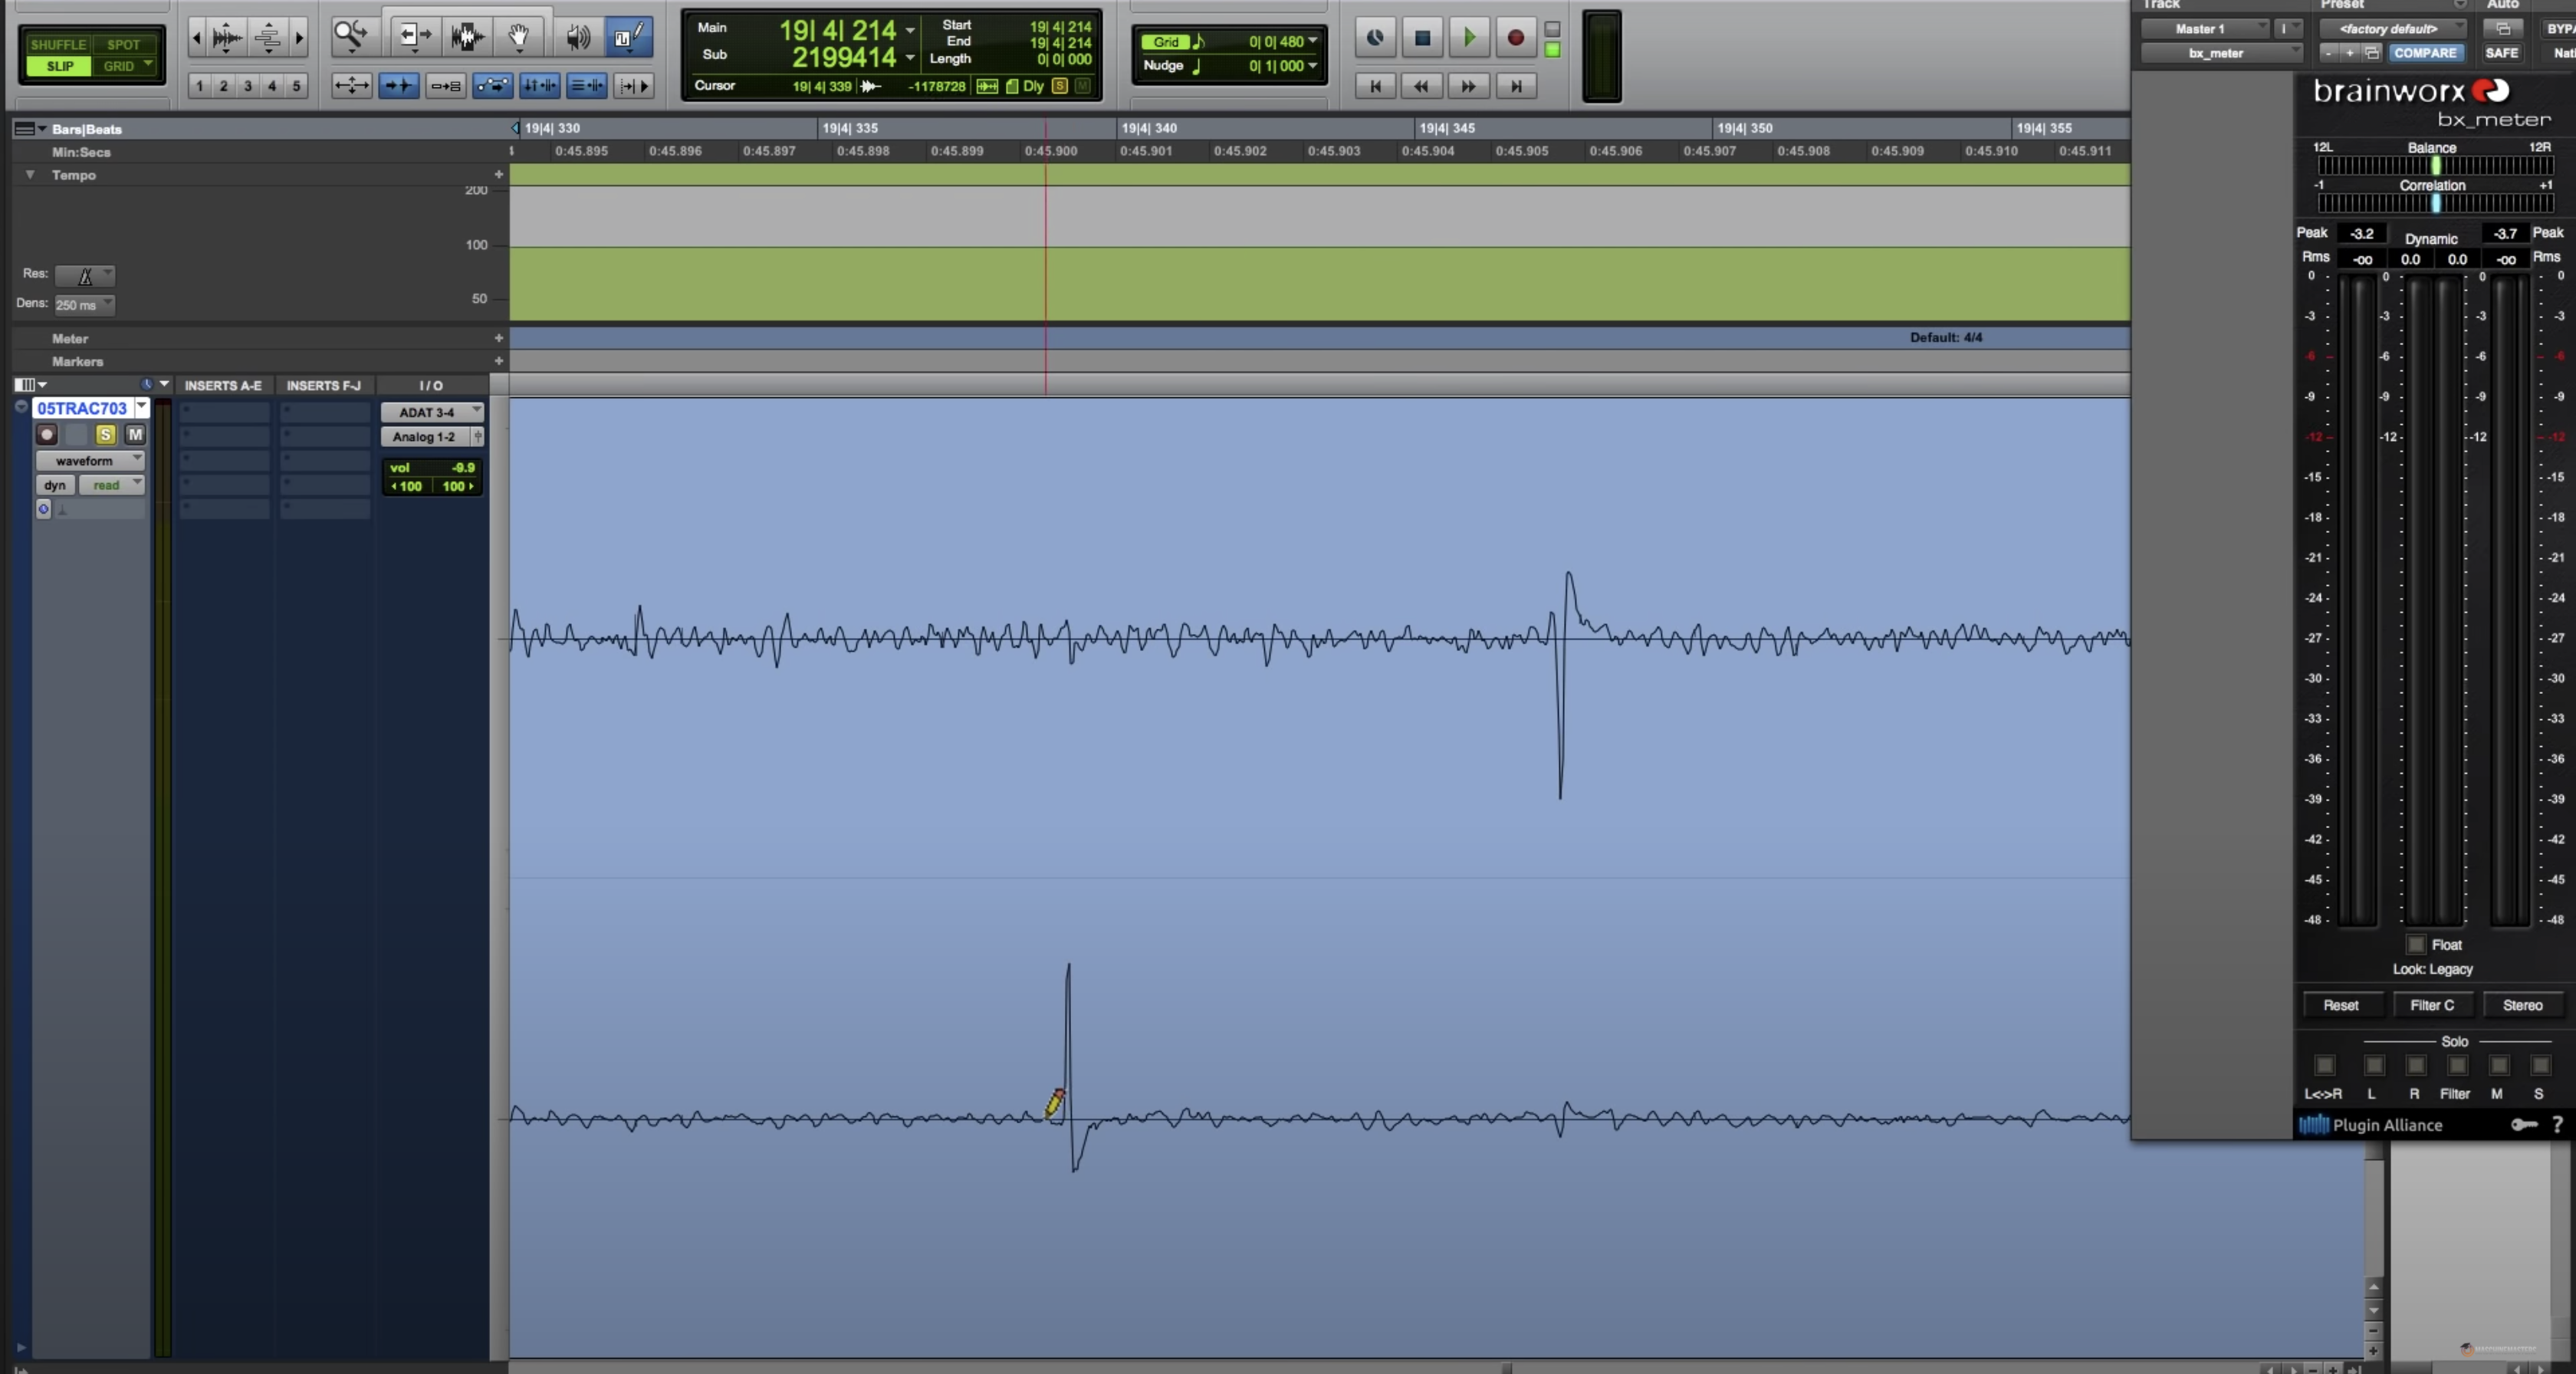 Pro Tools window zoomed in on an audio clip to better see the click that needs repair.